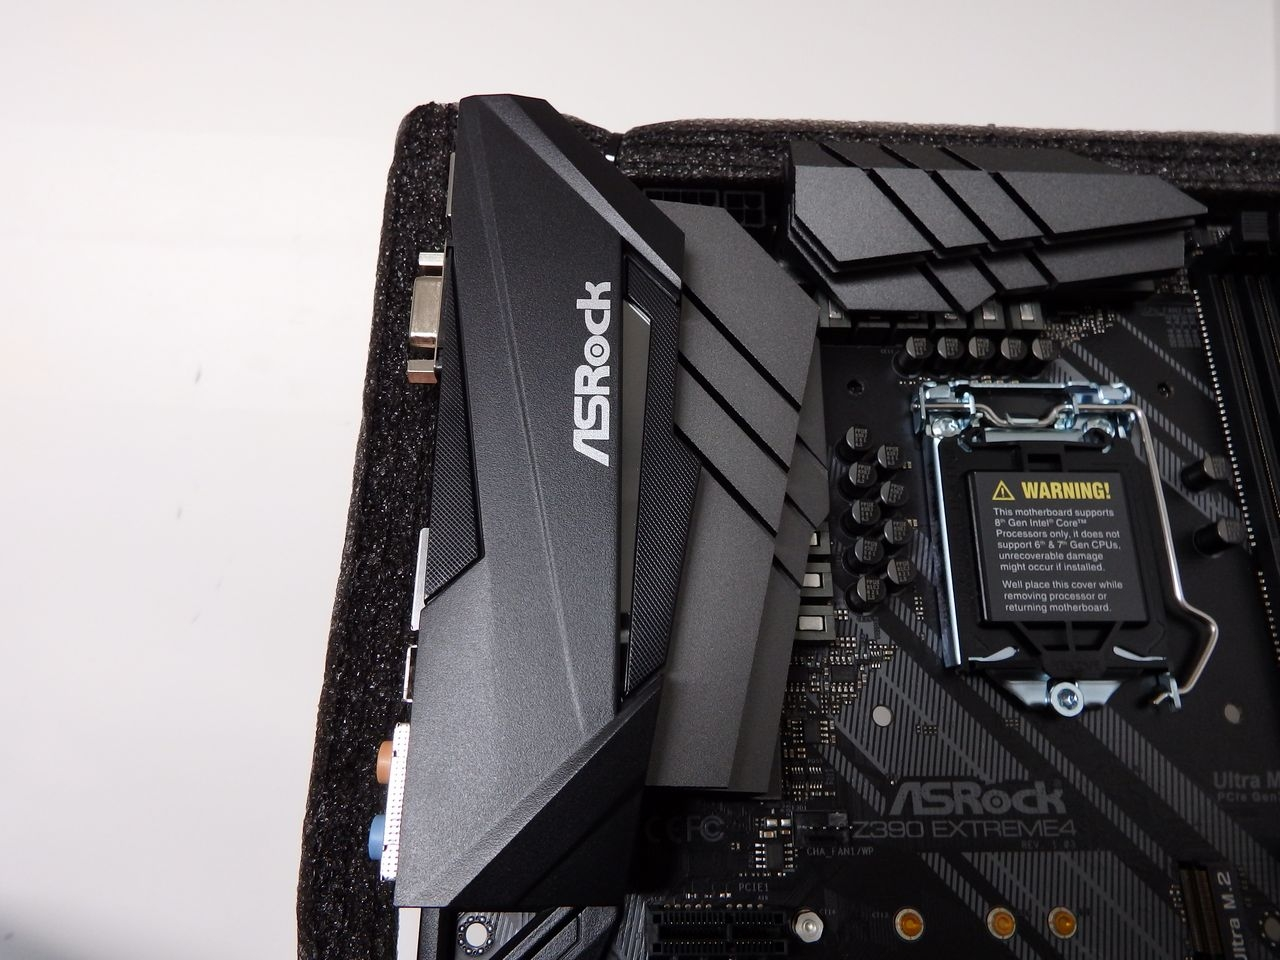 Reviewed: ASRock Z390 Extreme4 - PC Tech Reviews Australia